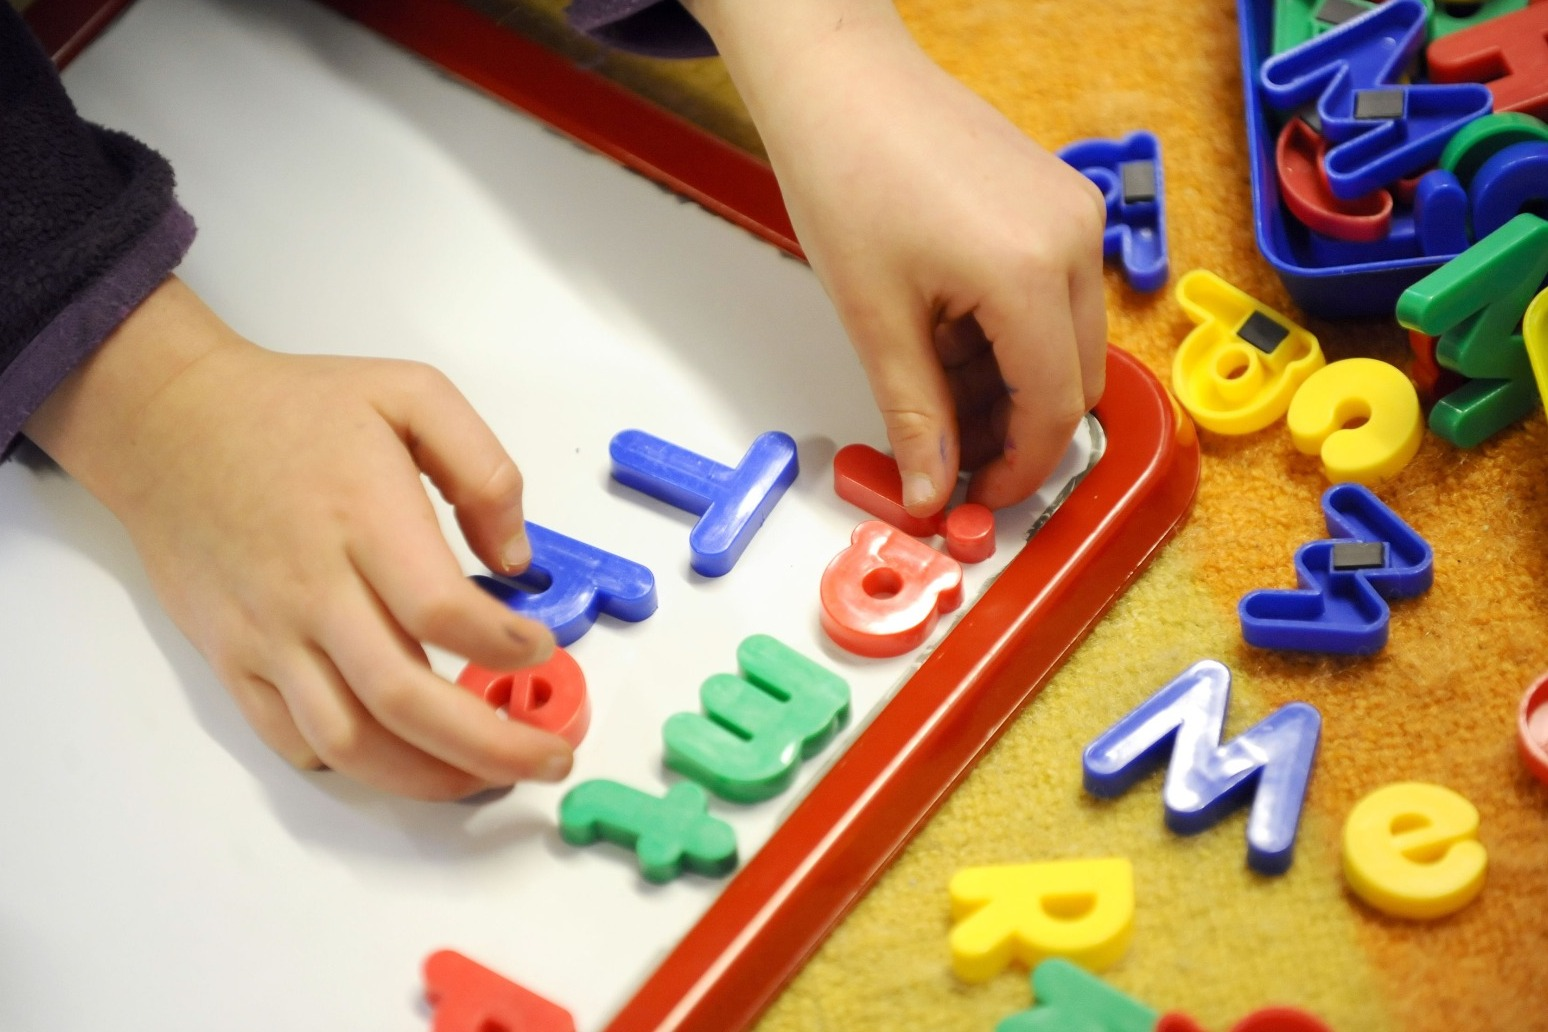 Parents struggle to balance work and childcare with poorest families hit hardest